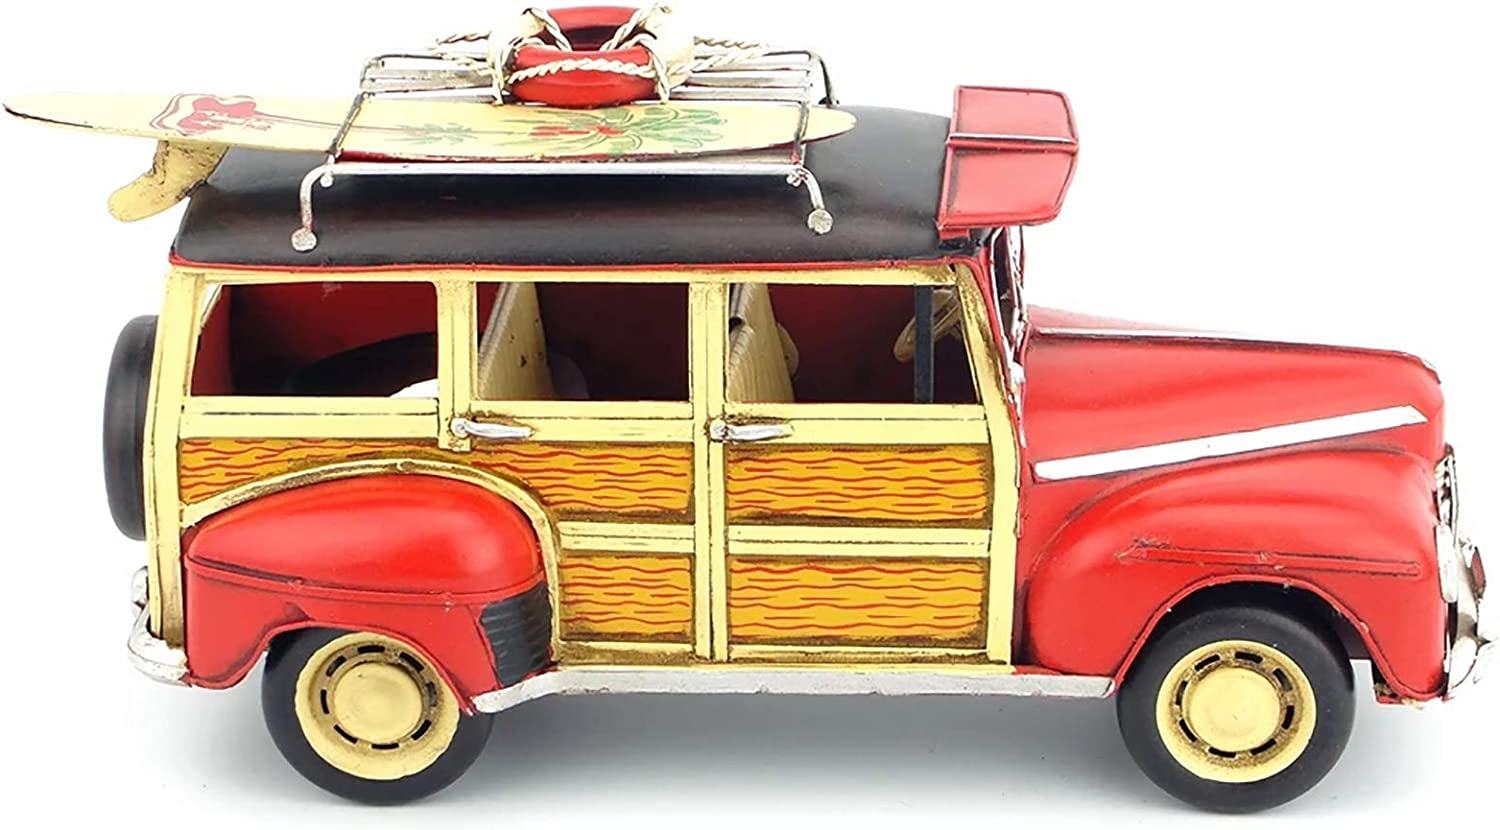 YHYGOO Antique Vintage Car Model Max 49% OFF Retro In stock Wrought Iron Hand